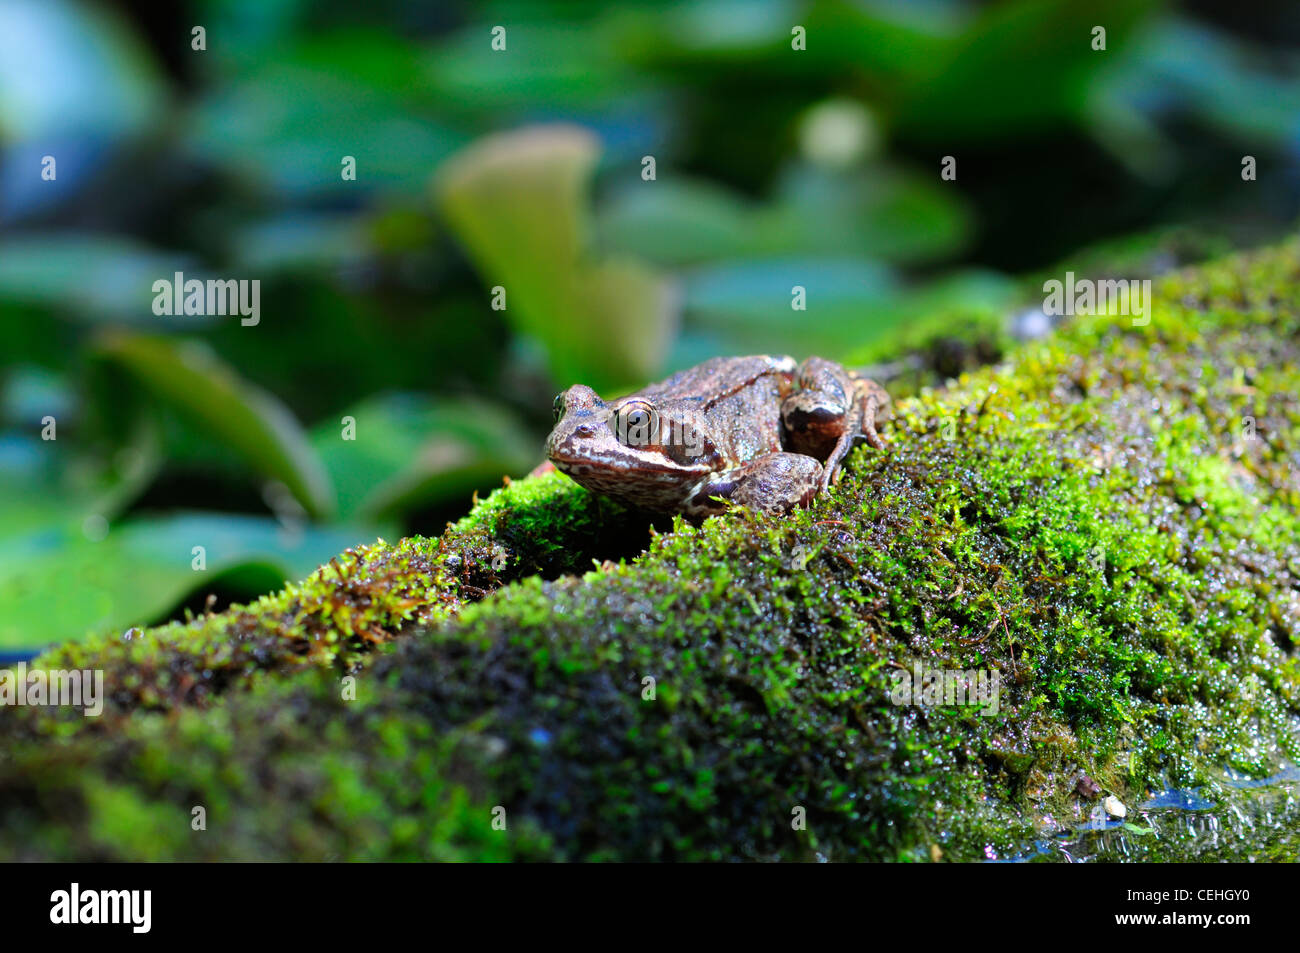 Common Frog (Rana temporaria) on side of moss-covered garden pond - Stock Image